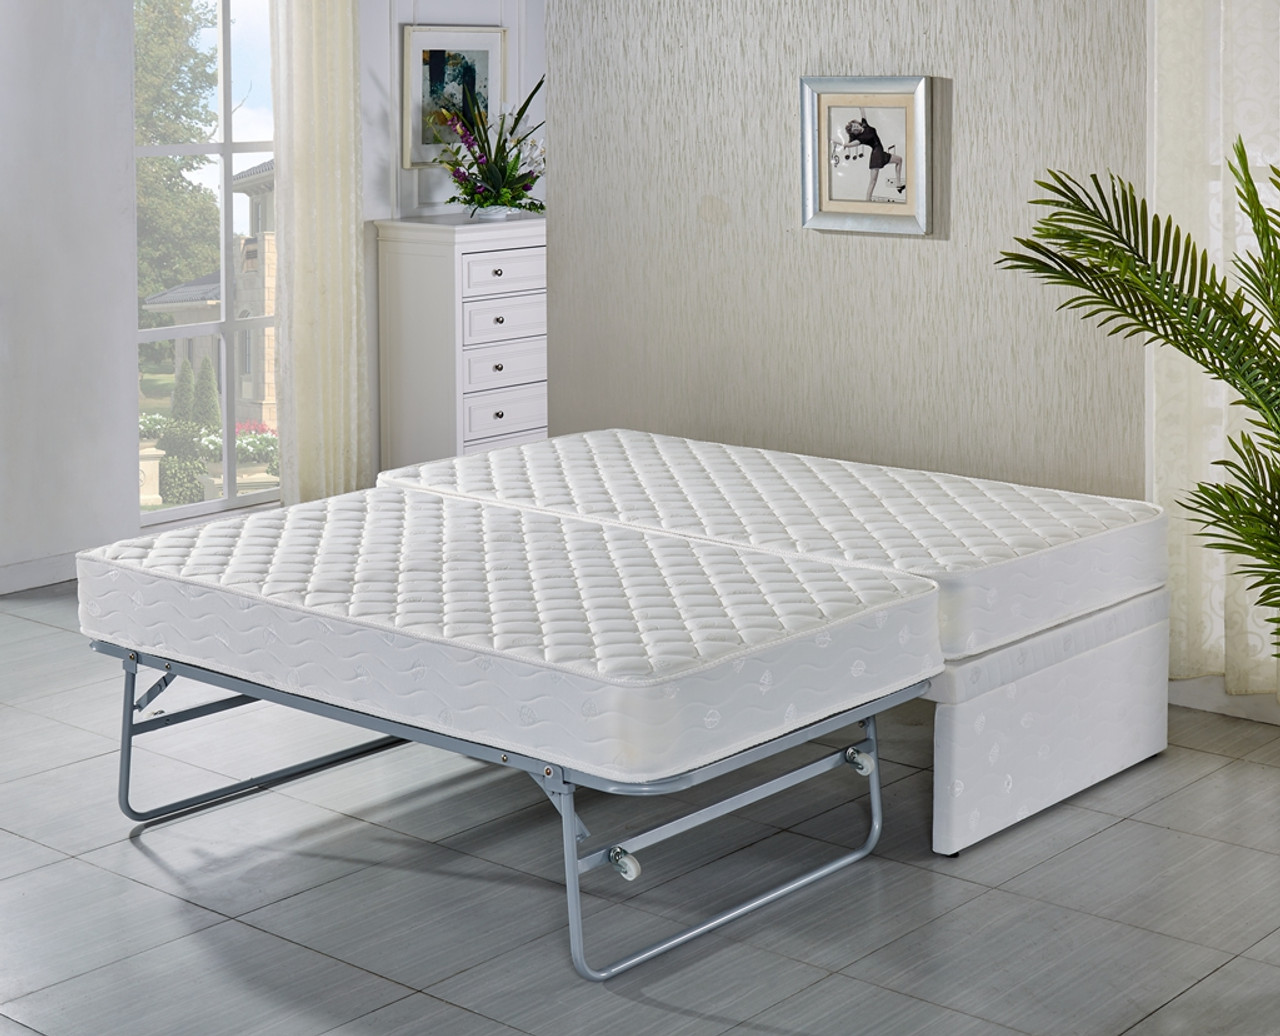 ba91bae81 KING SINGLE Base with Trundle bed with 2 mattresses- 5 years warranty ...